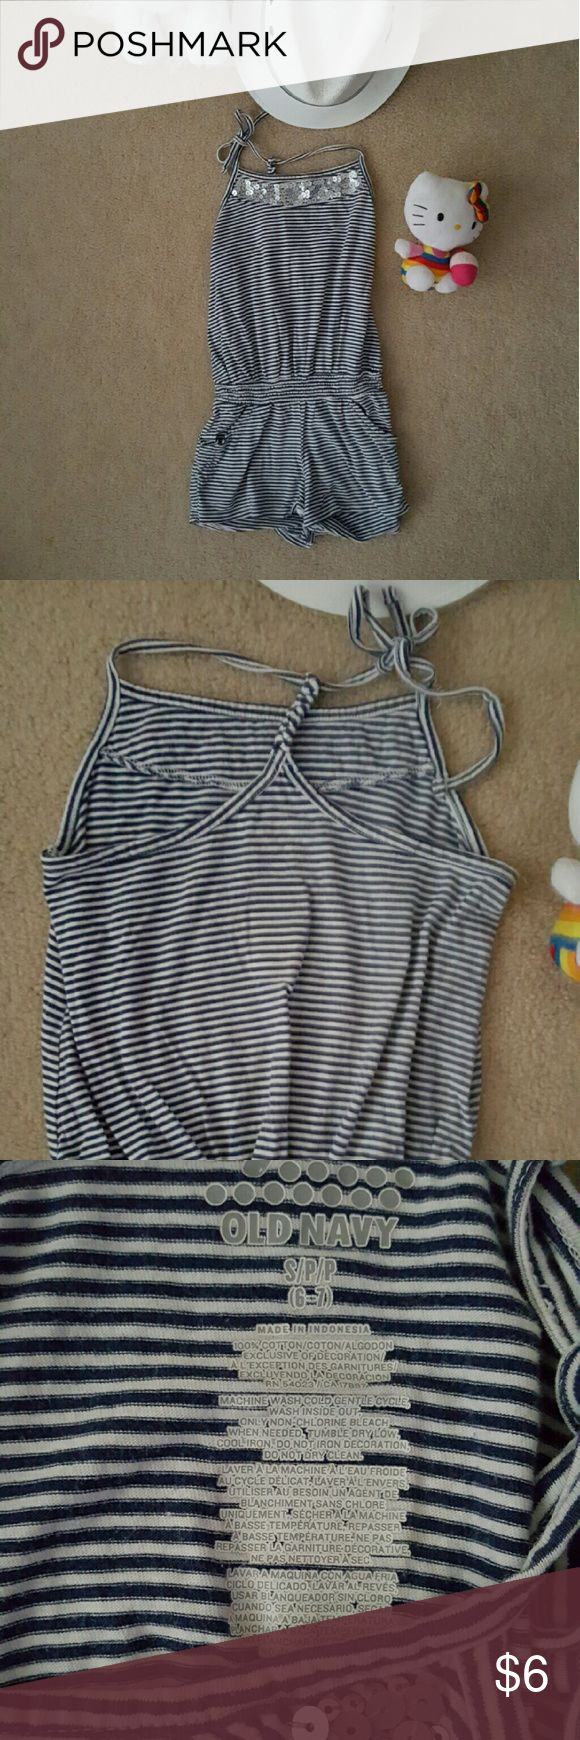 Old Navy jumper size 6-7 This cute jumper is slightly used in excellent condition. There are no holes or stains on it. Old Navy Bottoms Jumpsuits & Rompers